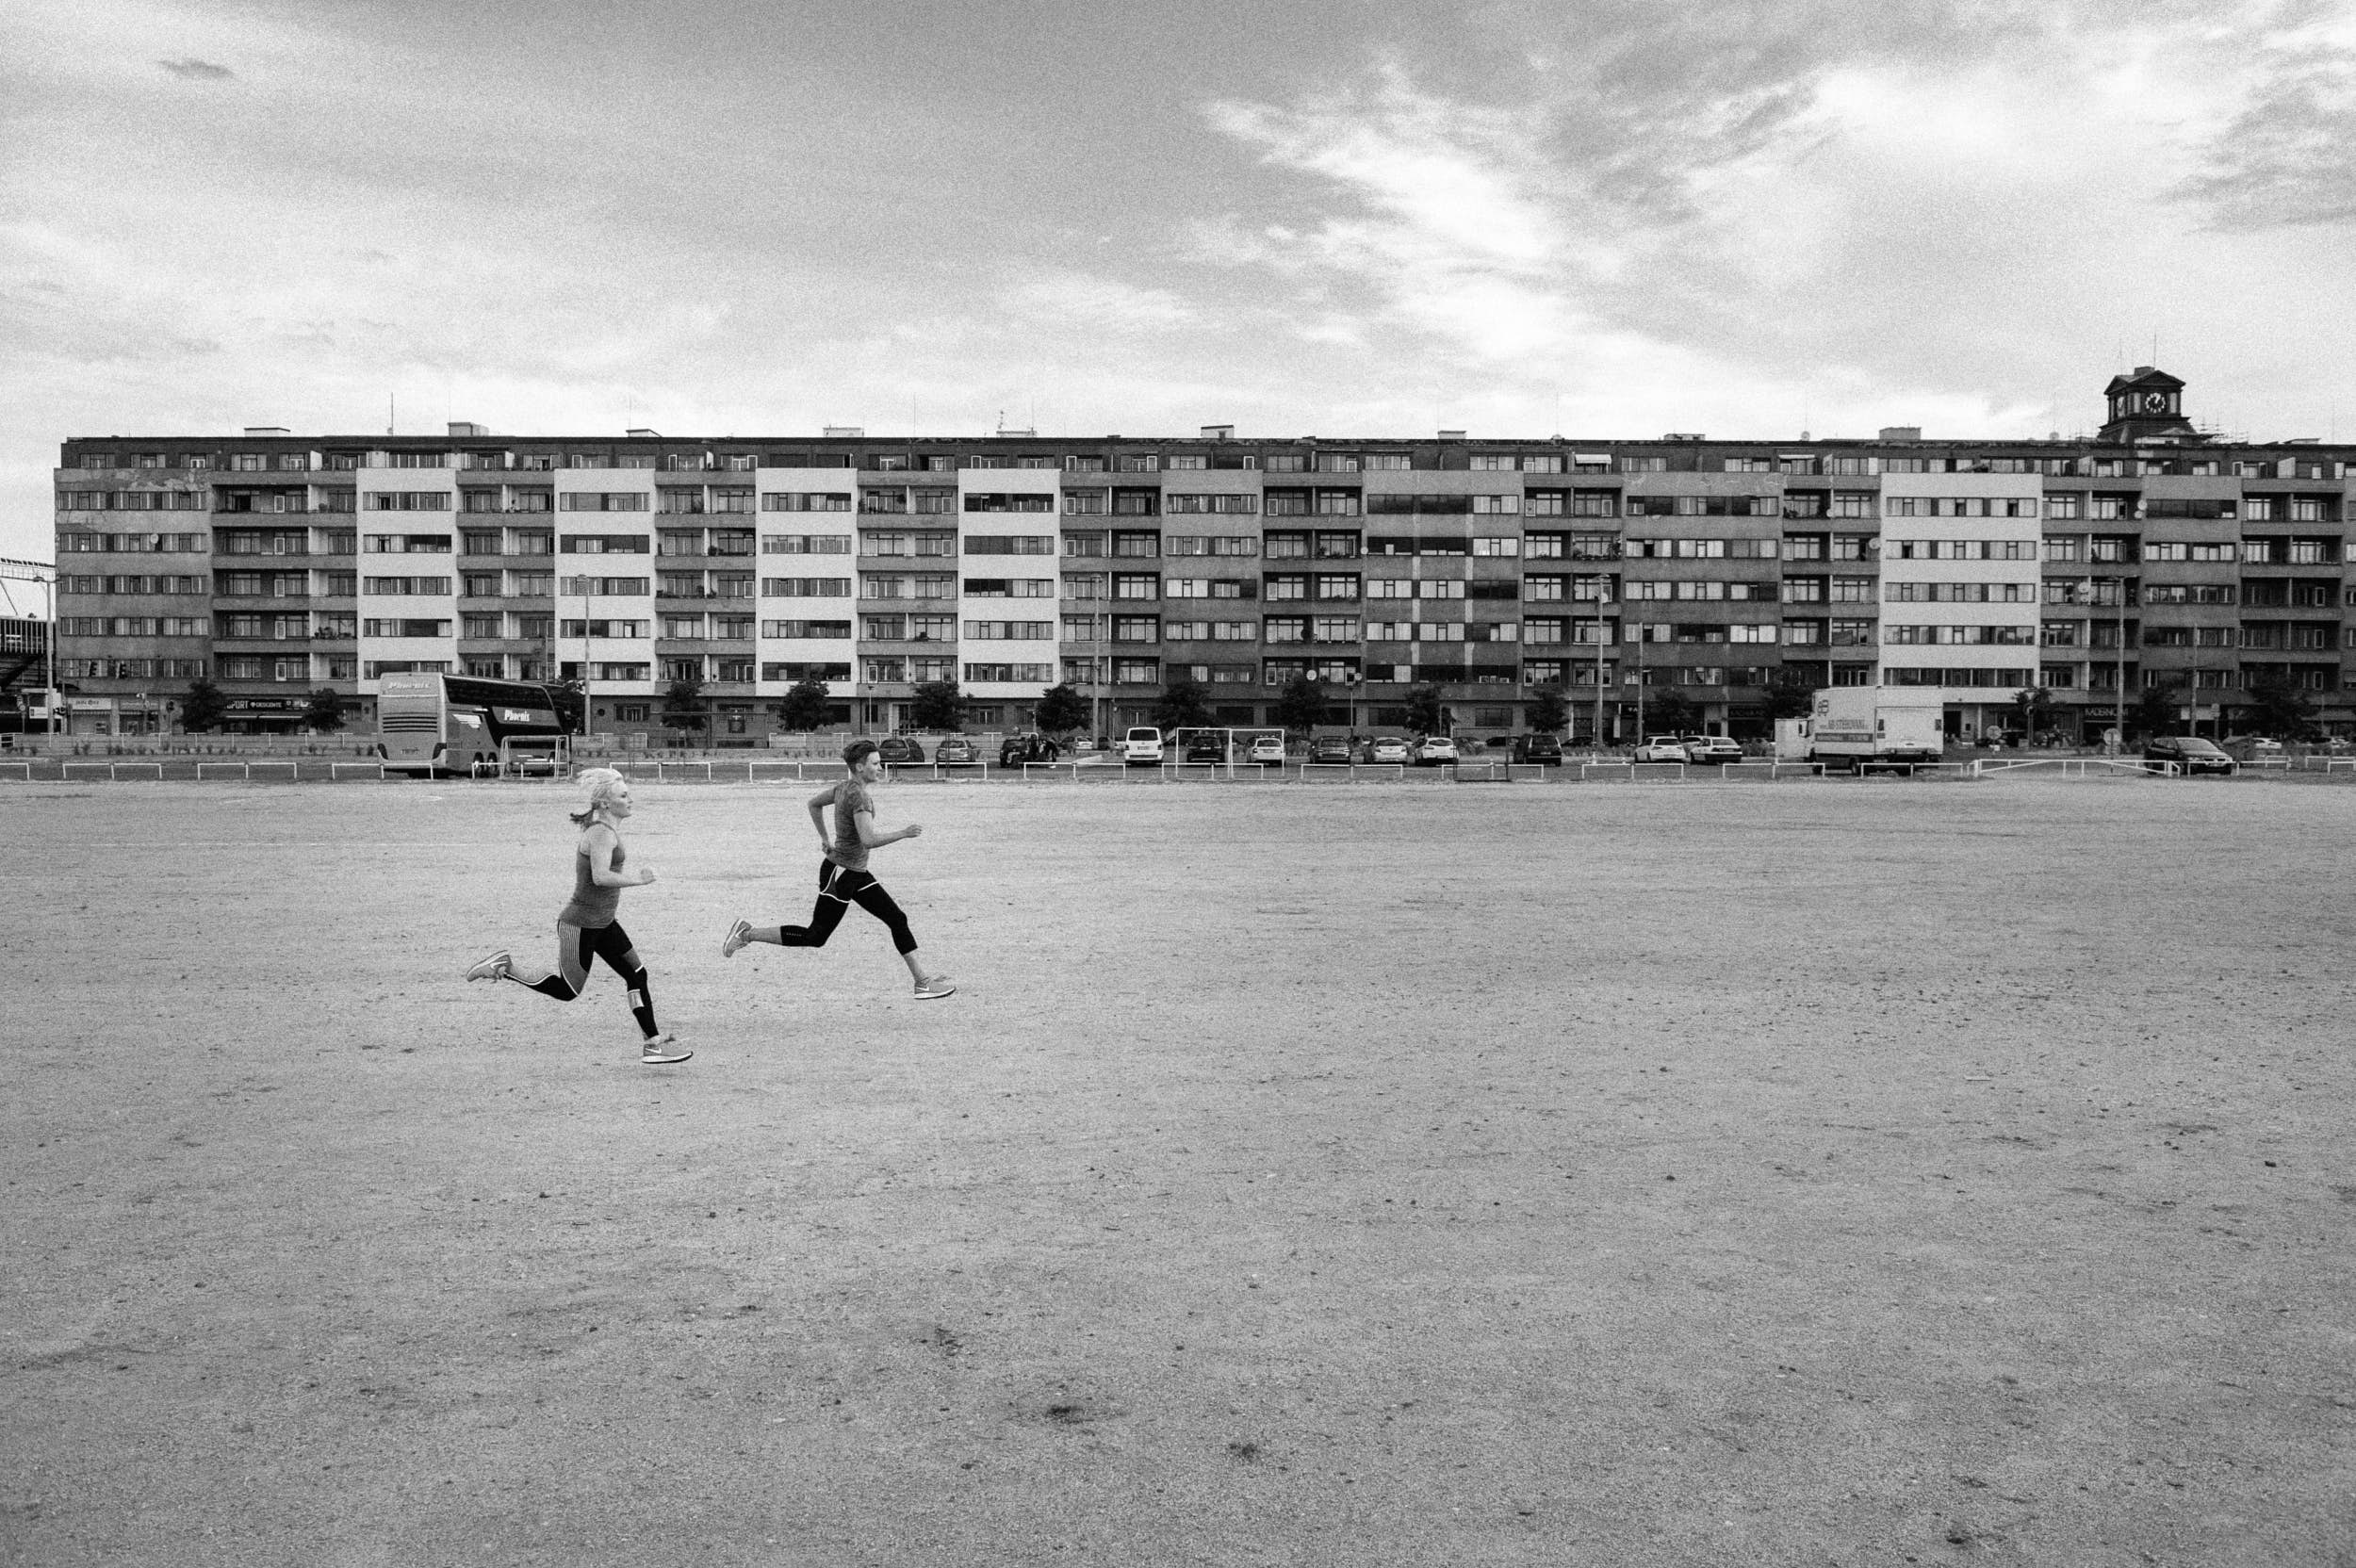 Black and white sport photography: two girls running across a sand plain with big housing estate in the background.